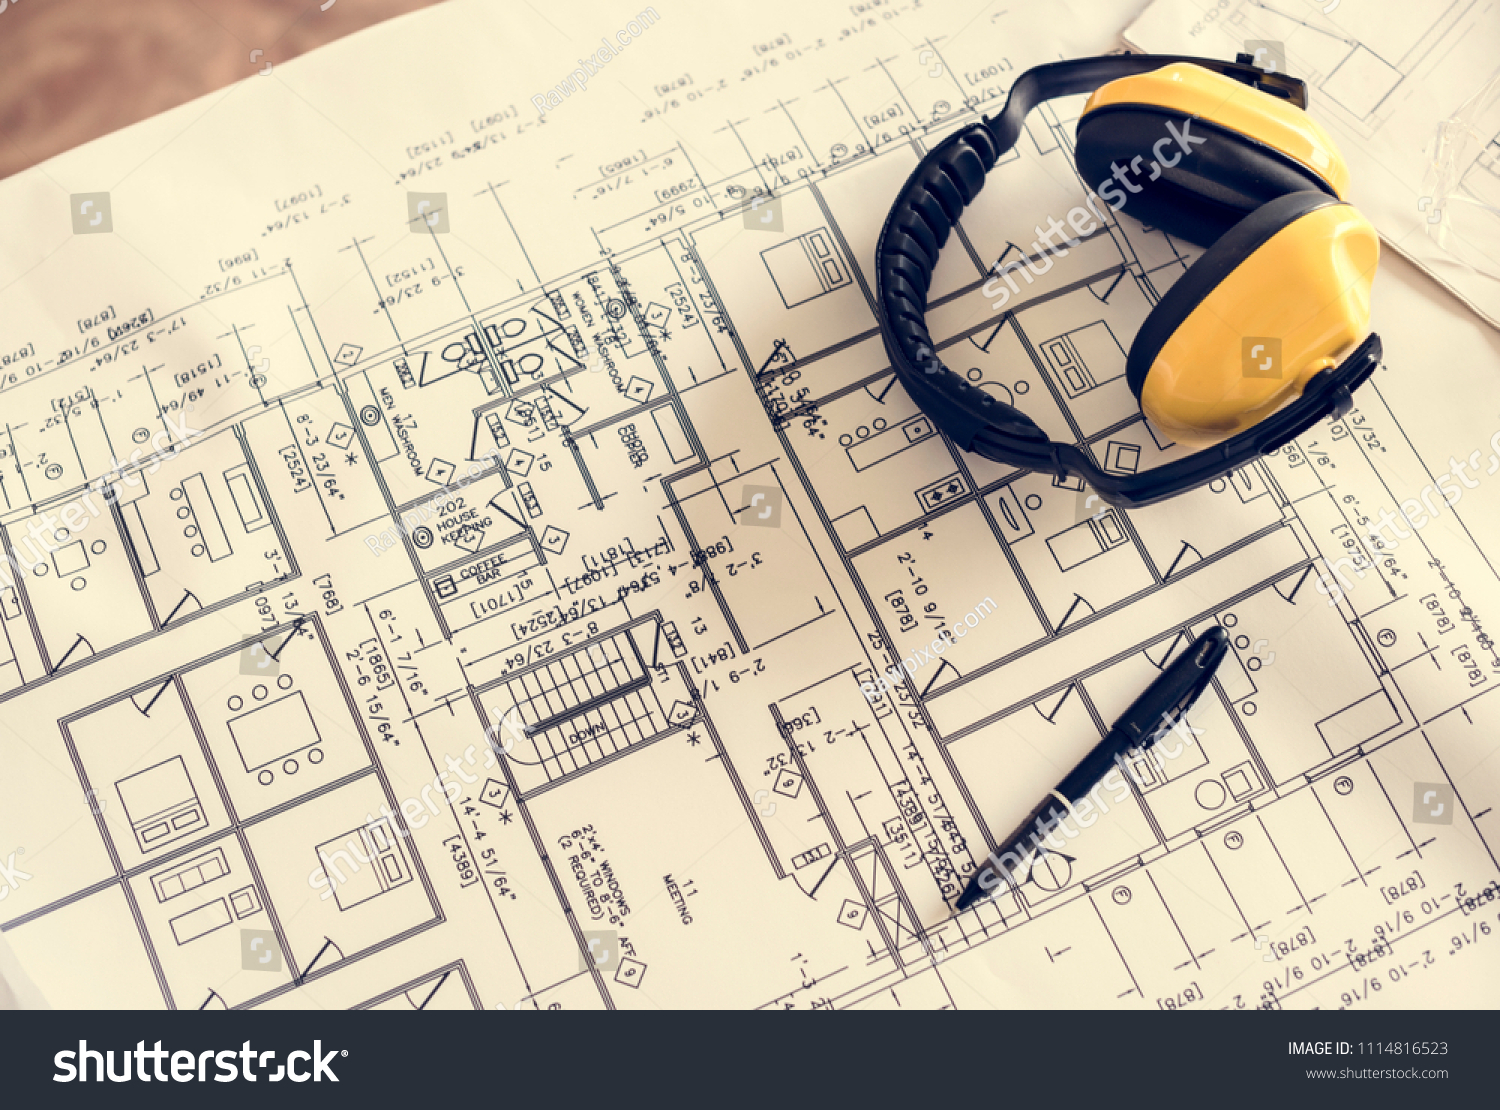 Blueprint drawing design pattern stock photo royalty free blueprint drawing design pattern stock photo royalty free 1114816523 shutterstock malvernweather Images